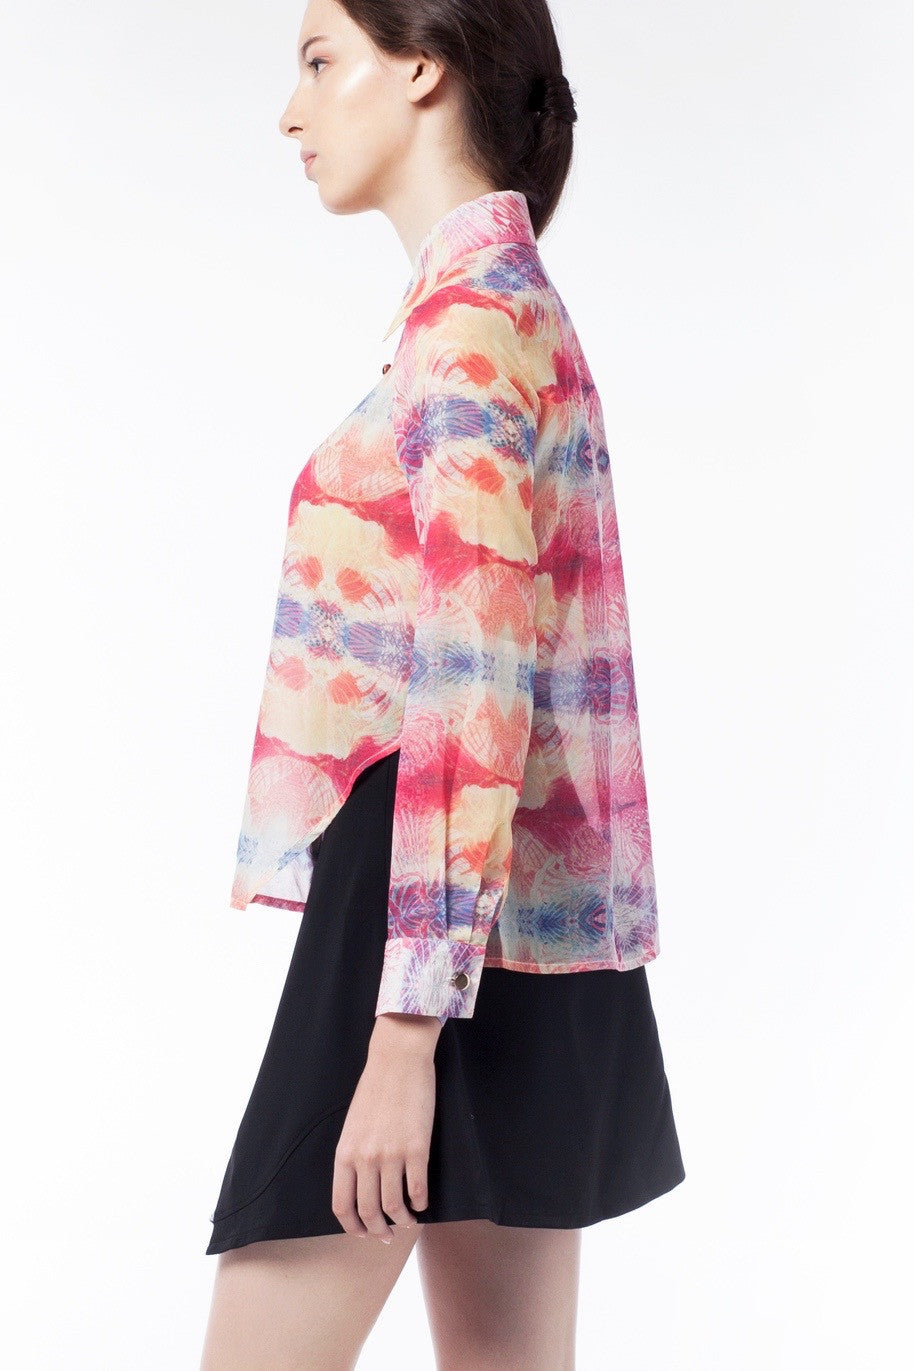 Kaleidoscopic Print Sheer Blouse - GlanceZ   - 4